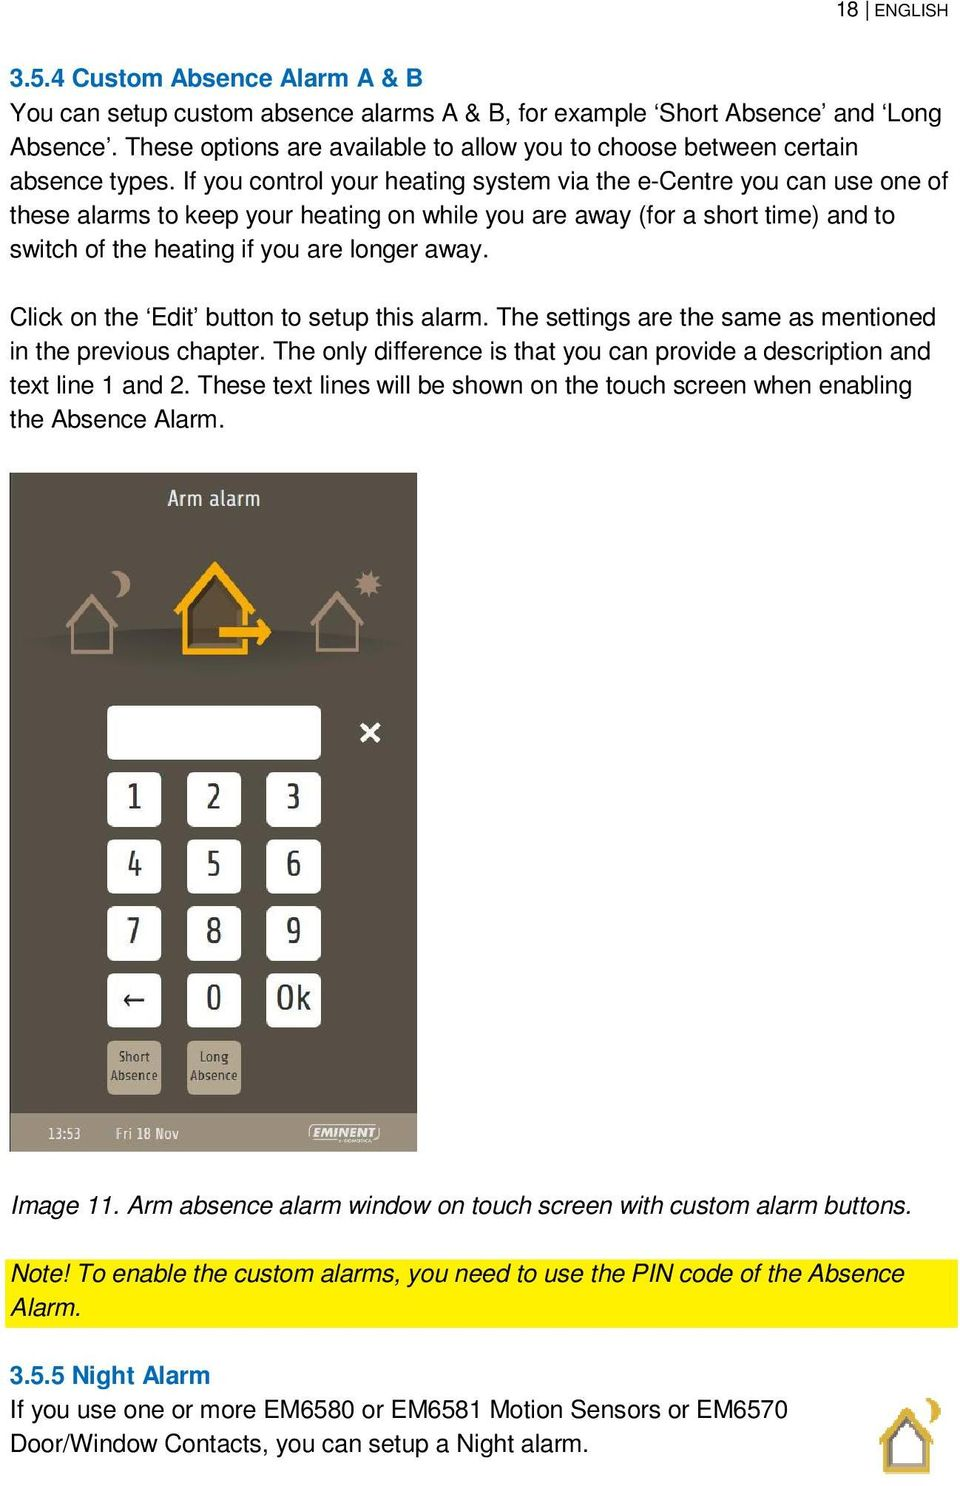 If you control your heating system via the e-centre you can use one of these alarms to keep your heating on while you are away (for a short time) and to switch of the heating if you are longer away.